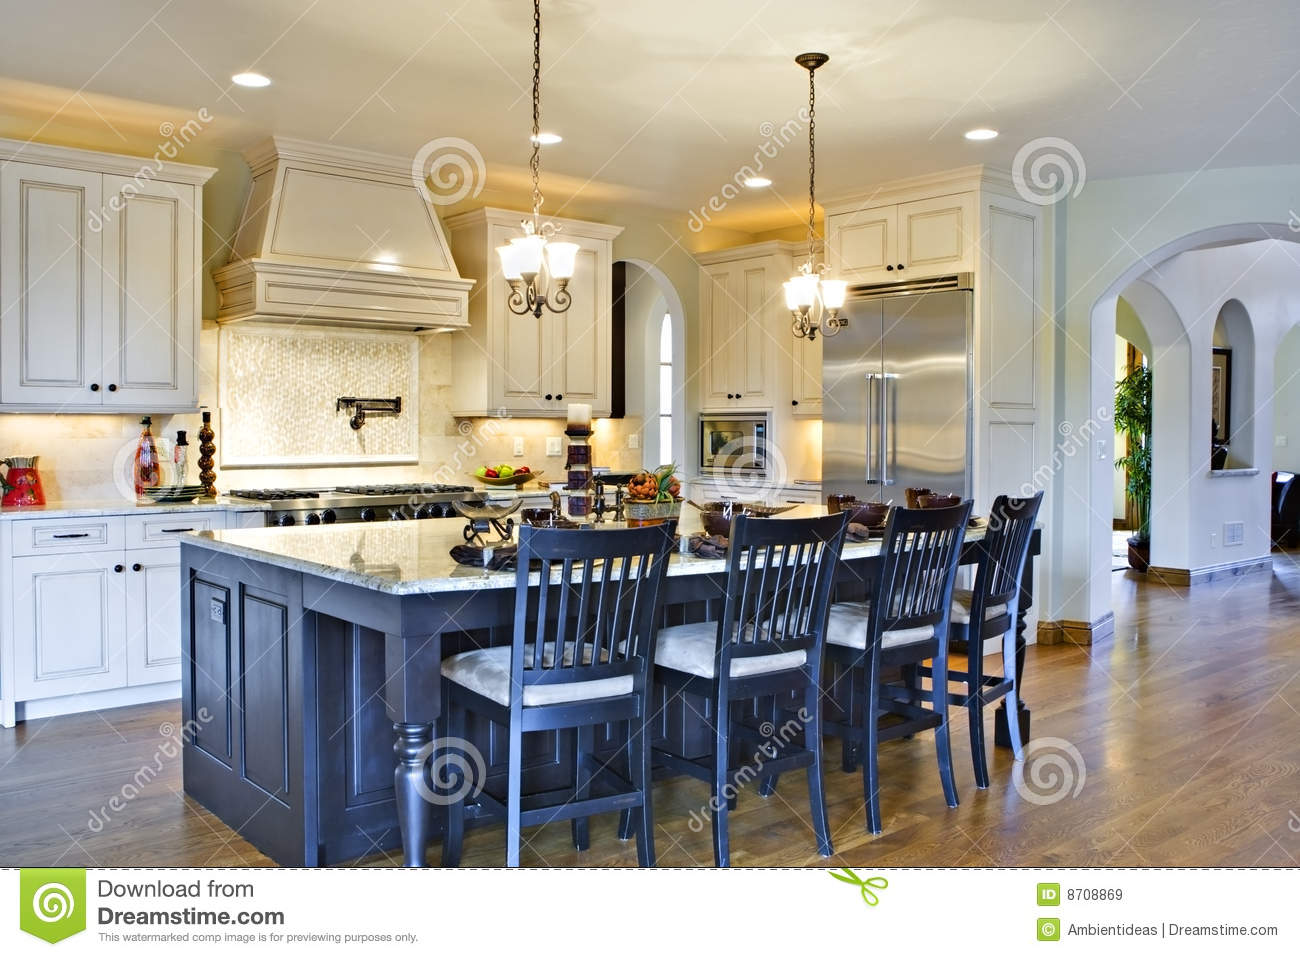 Custom Luxury Kitchen Custom Luxury Kitchen Royalty Free Stock Images  Image 8708869